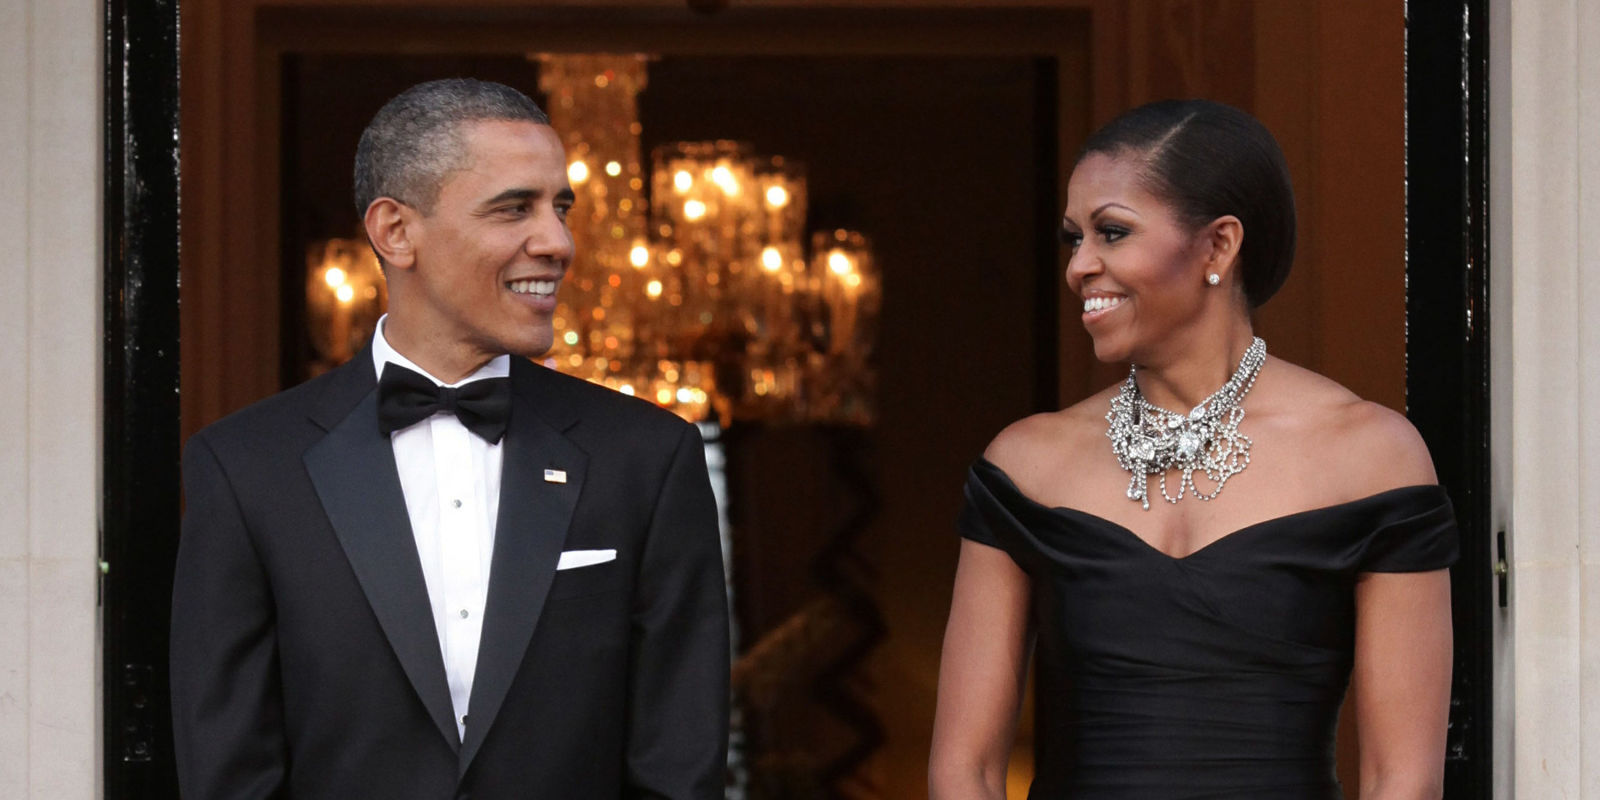 Barack And Michelle Obama Celebrate Their 26th Wedding